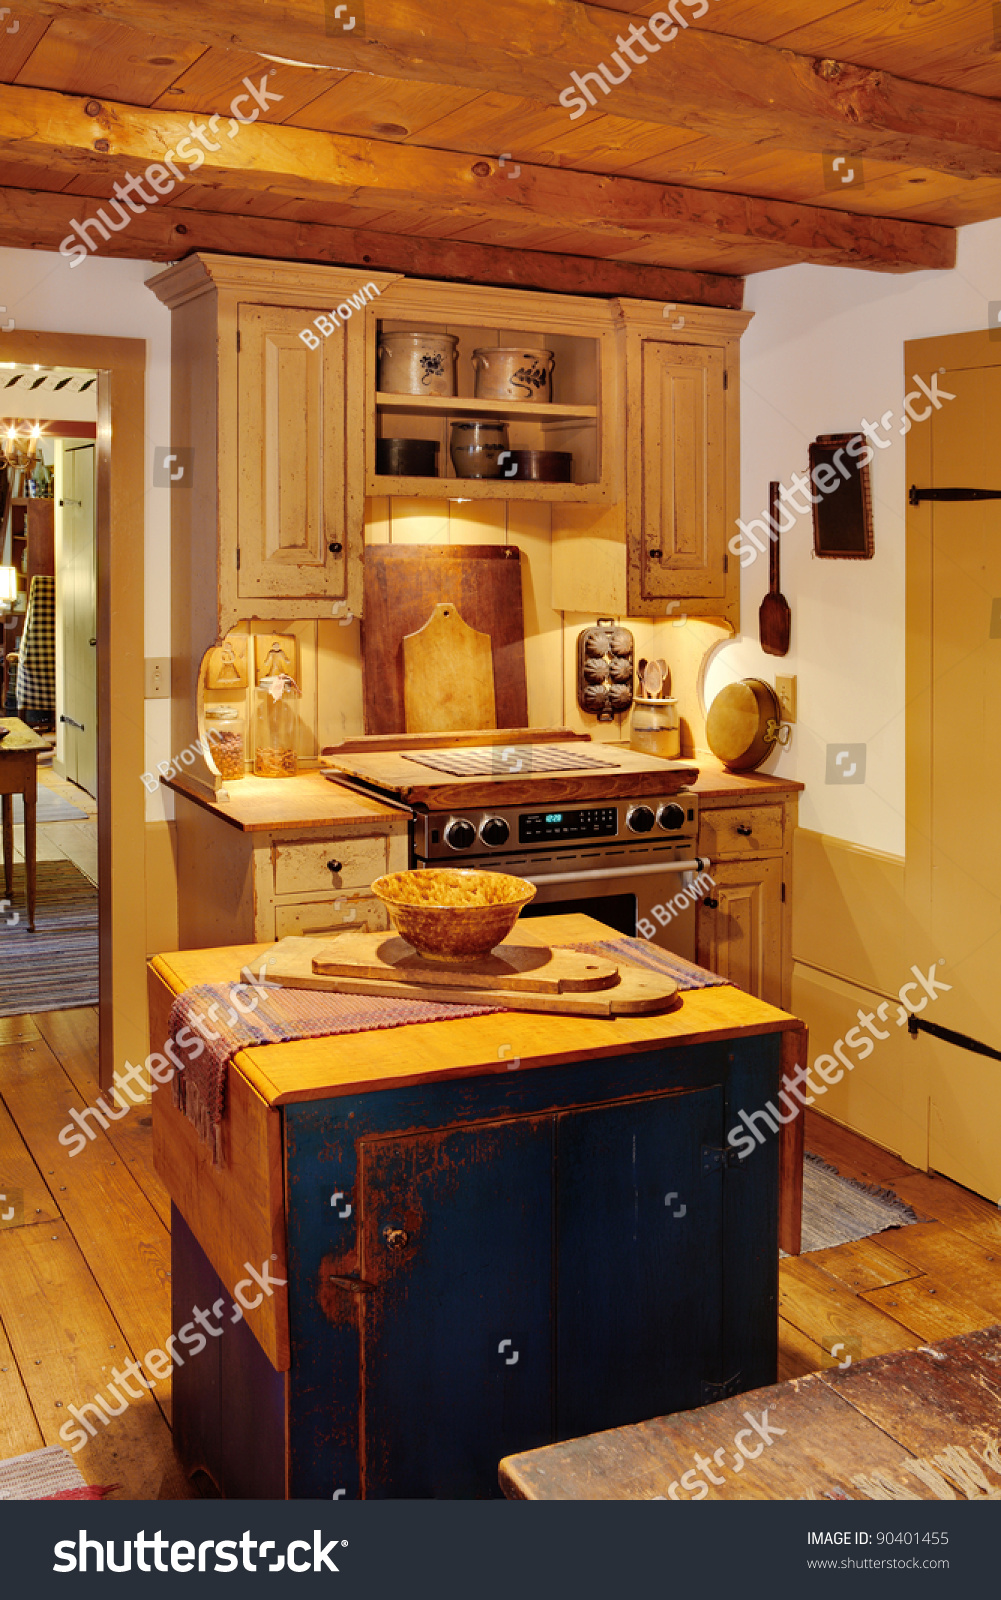 Primitive Kitchen The Kitchen In A Primitive Colonial Style Reproduction Home The